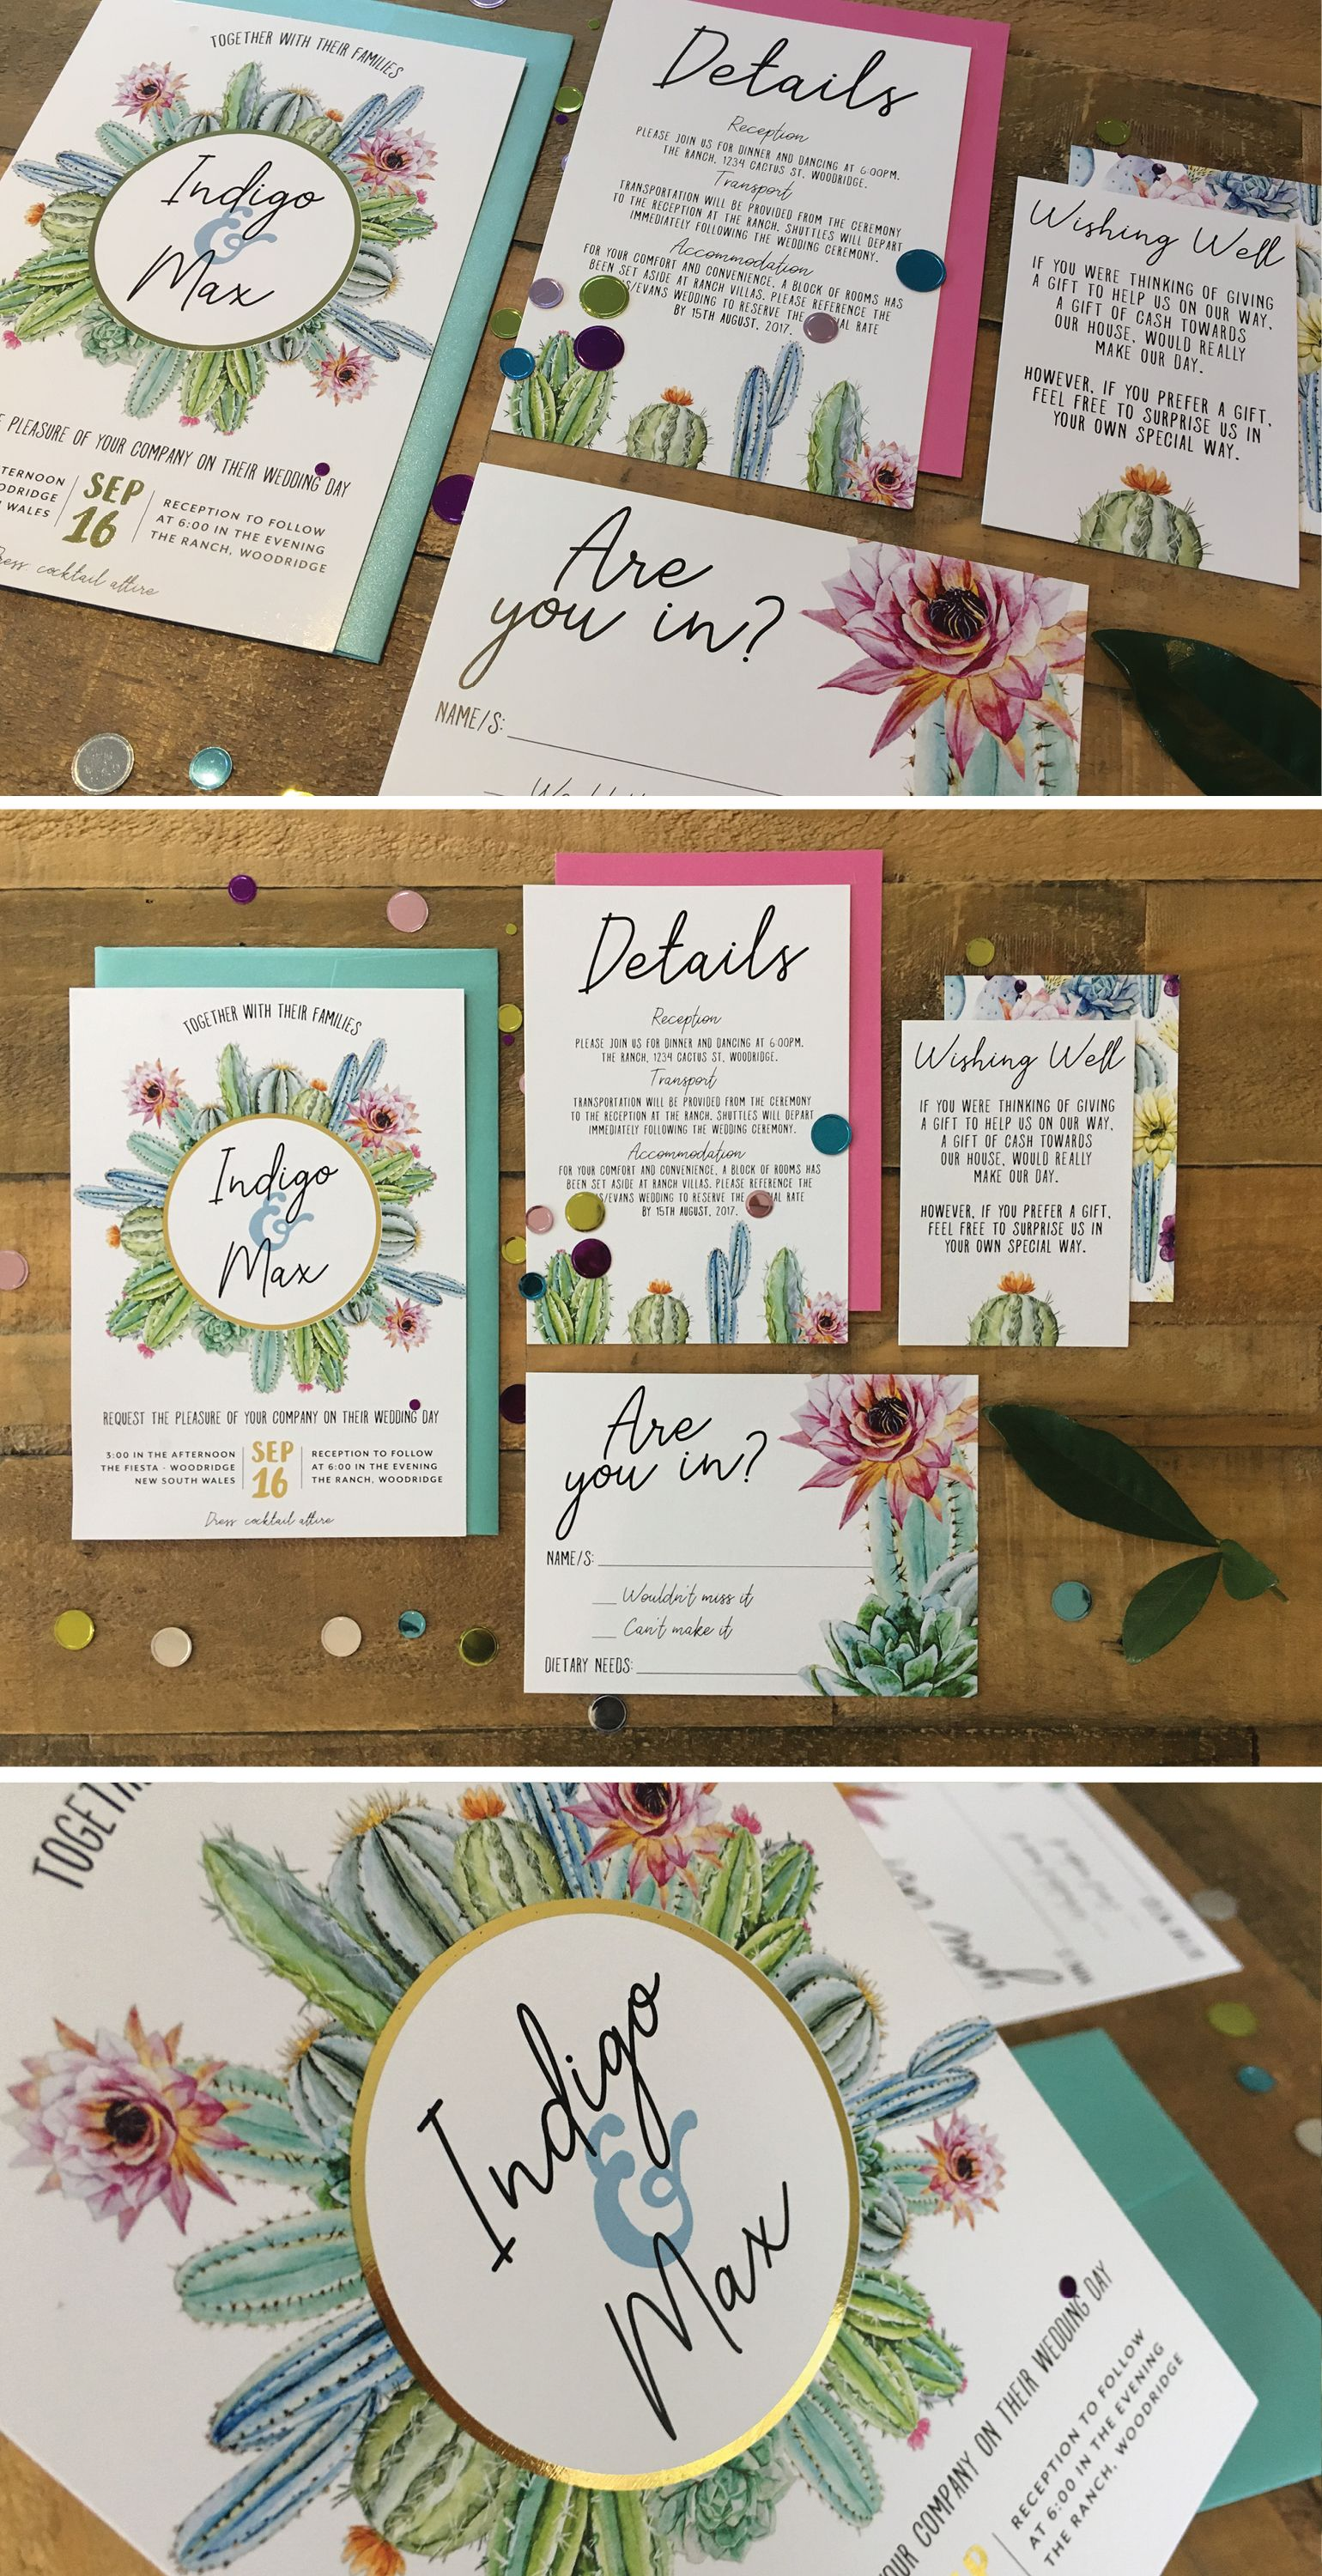 This Festive Cactus Wedding Invitation Features A Wreath Of Beautiful Pastel Watercolour Watercolor Cacti And Desert Flowers Perfect For Fiesta Themed